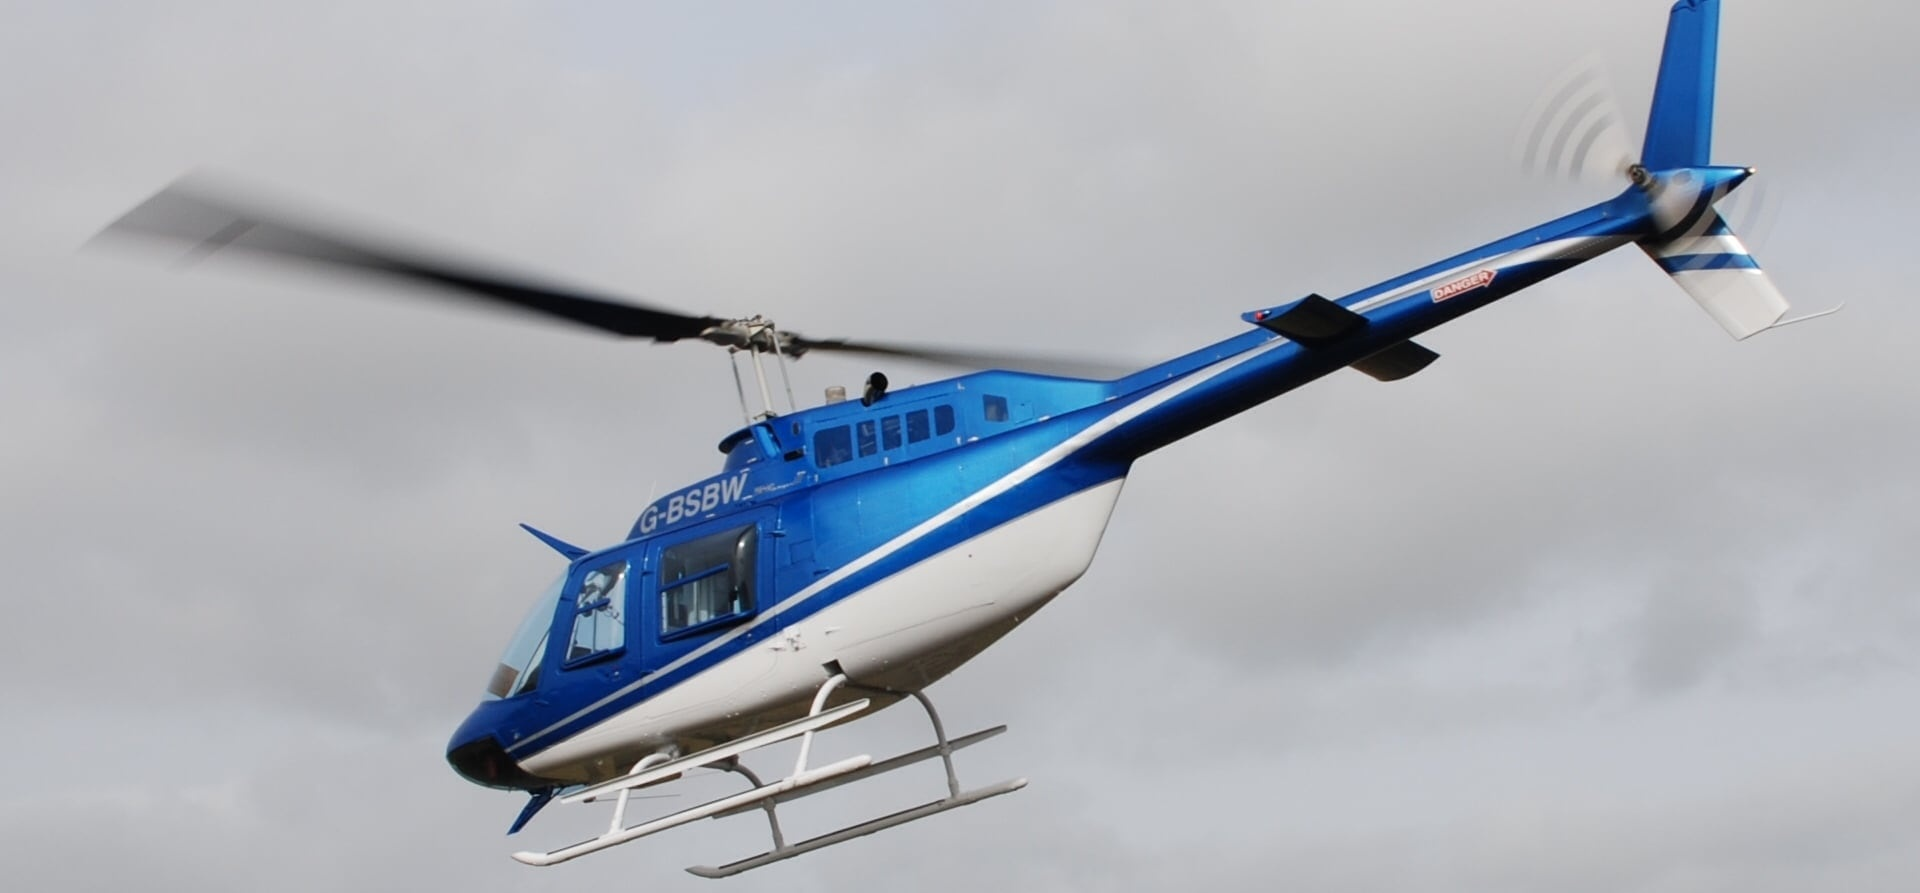 Helicopter Pleasure Flight For Four In Gloucestershire 30 Min